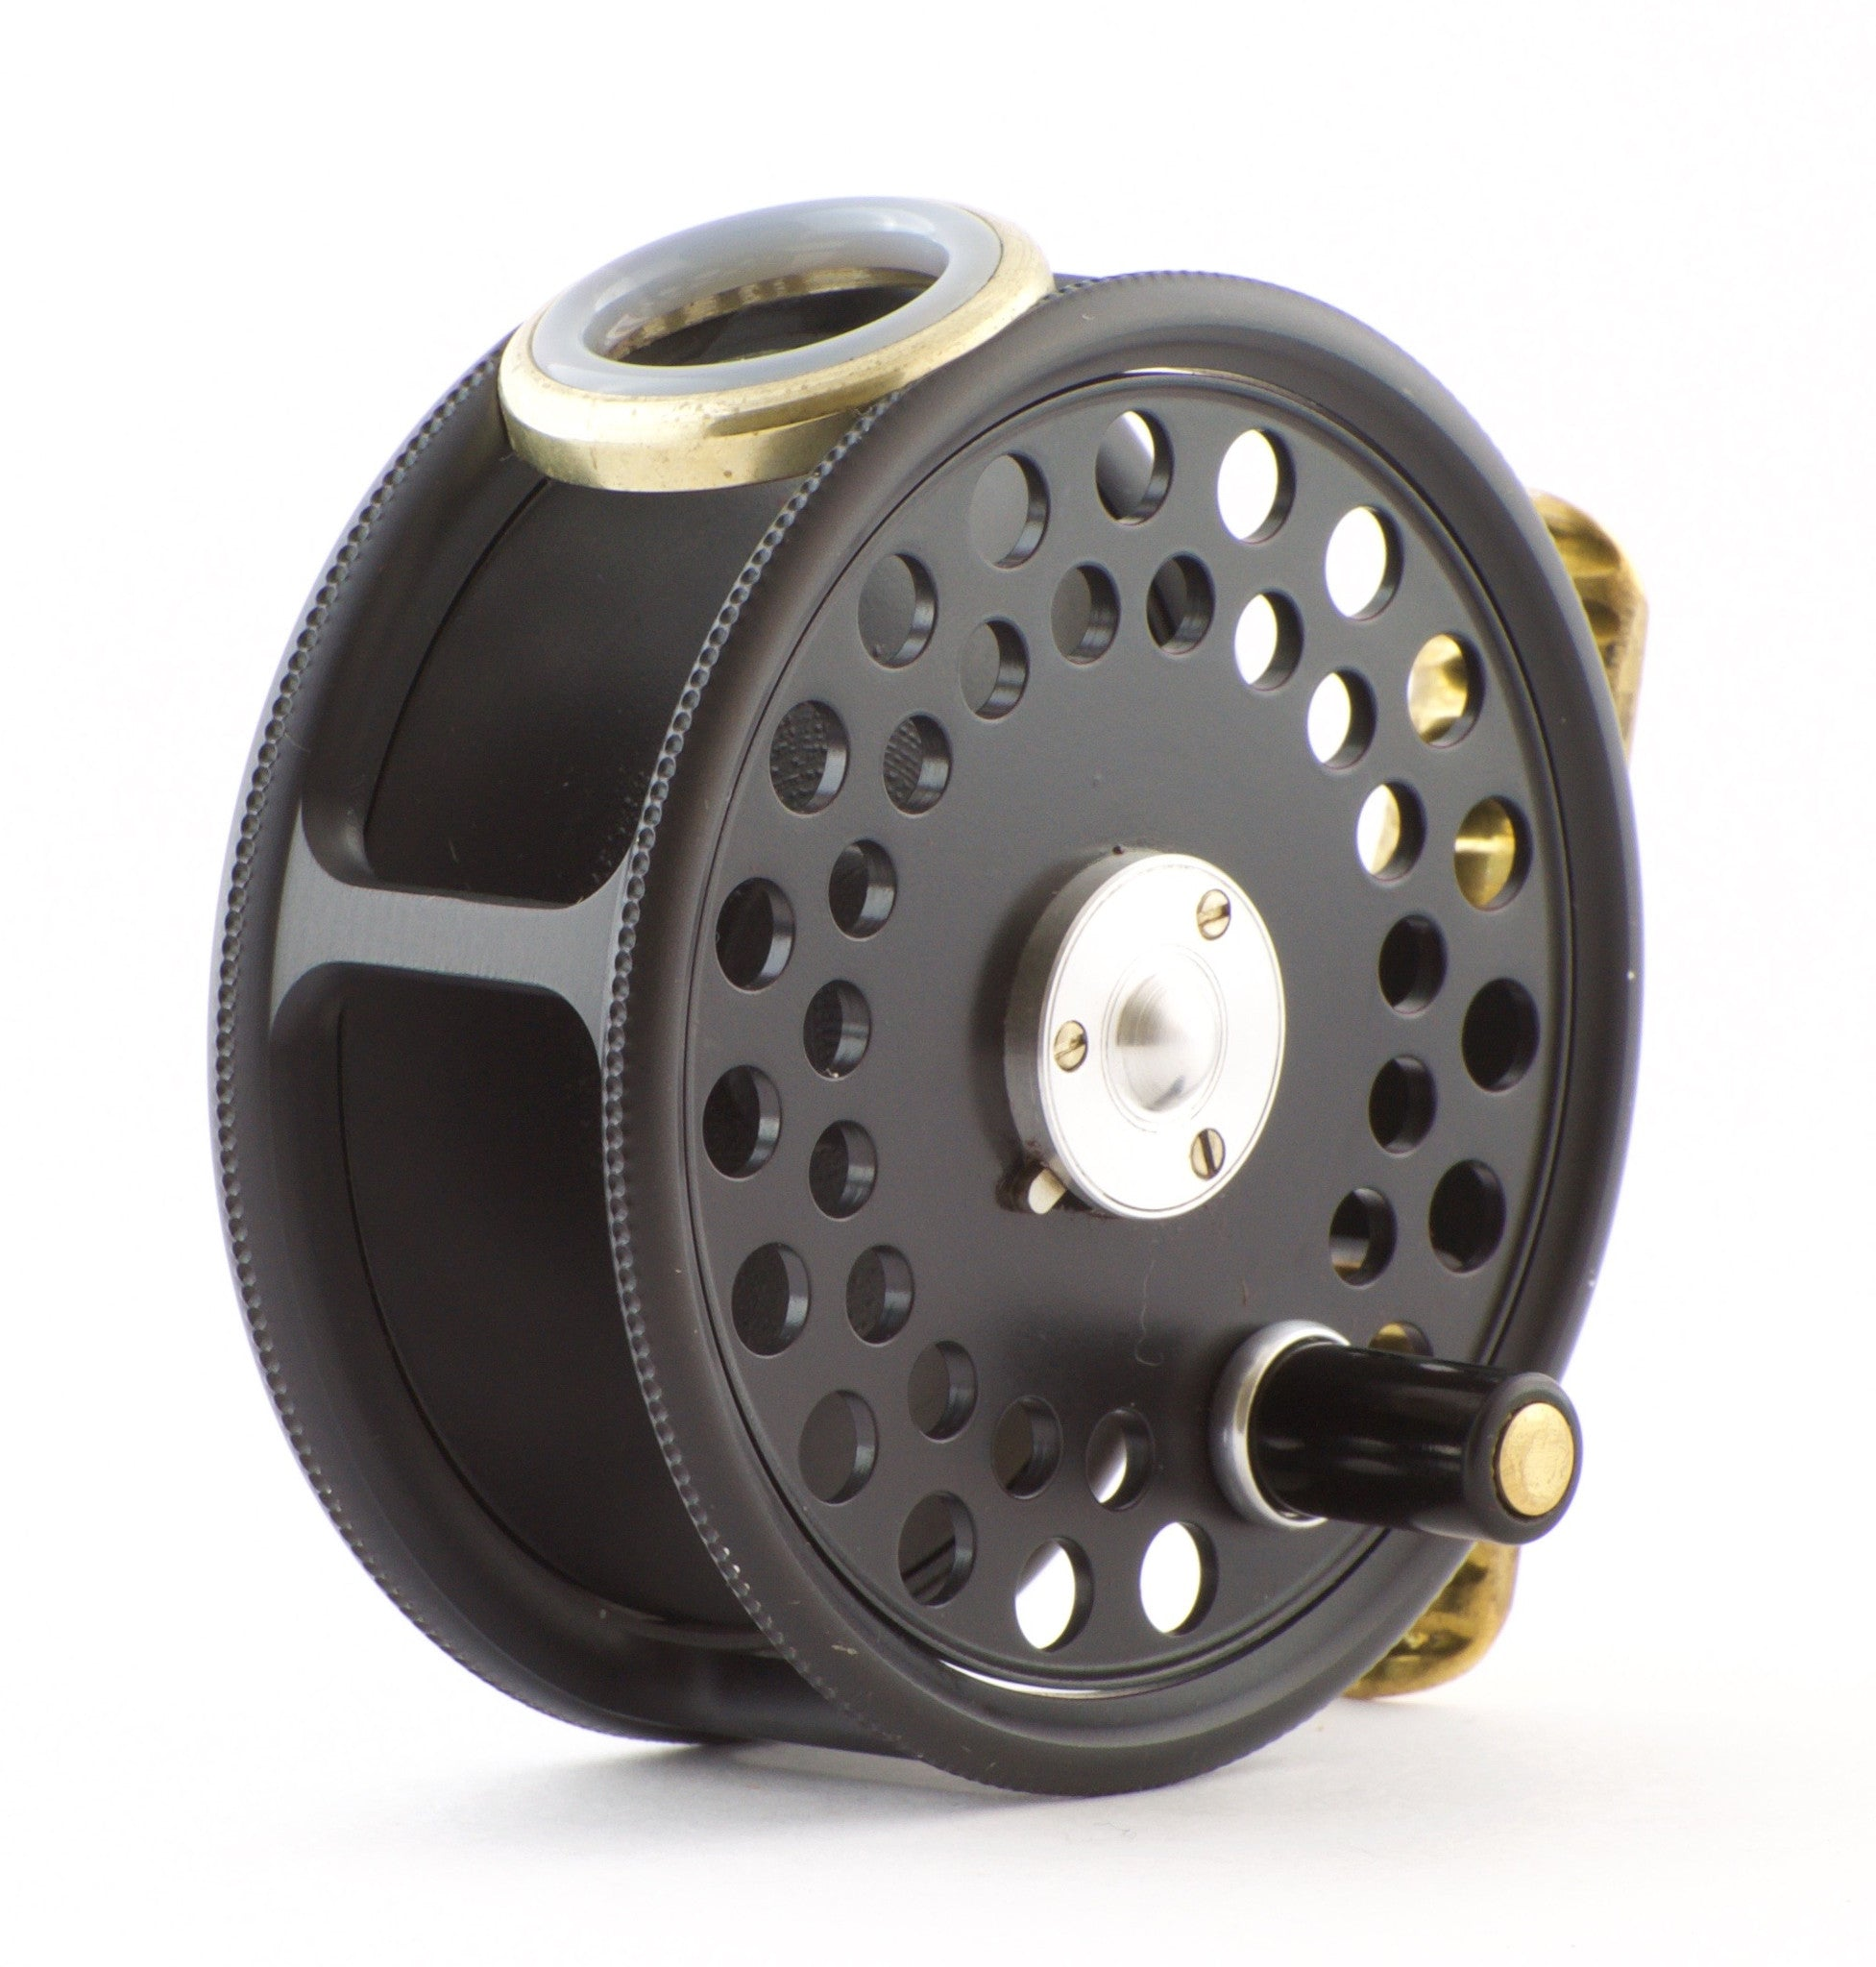 Hardy St George 3 Quot Fly Reel Limited Edition